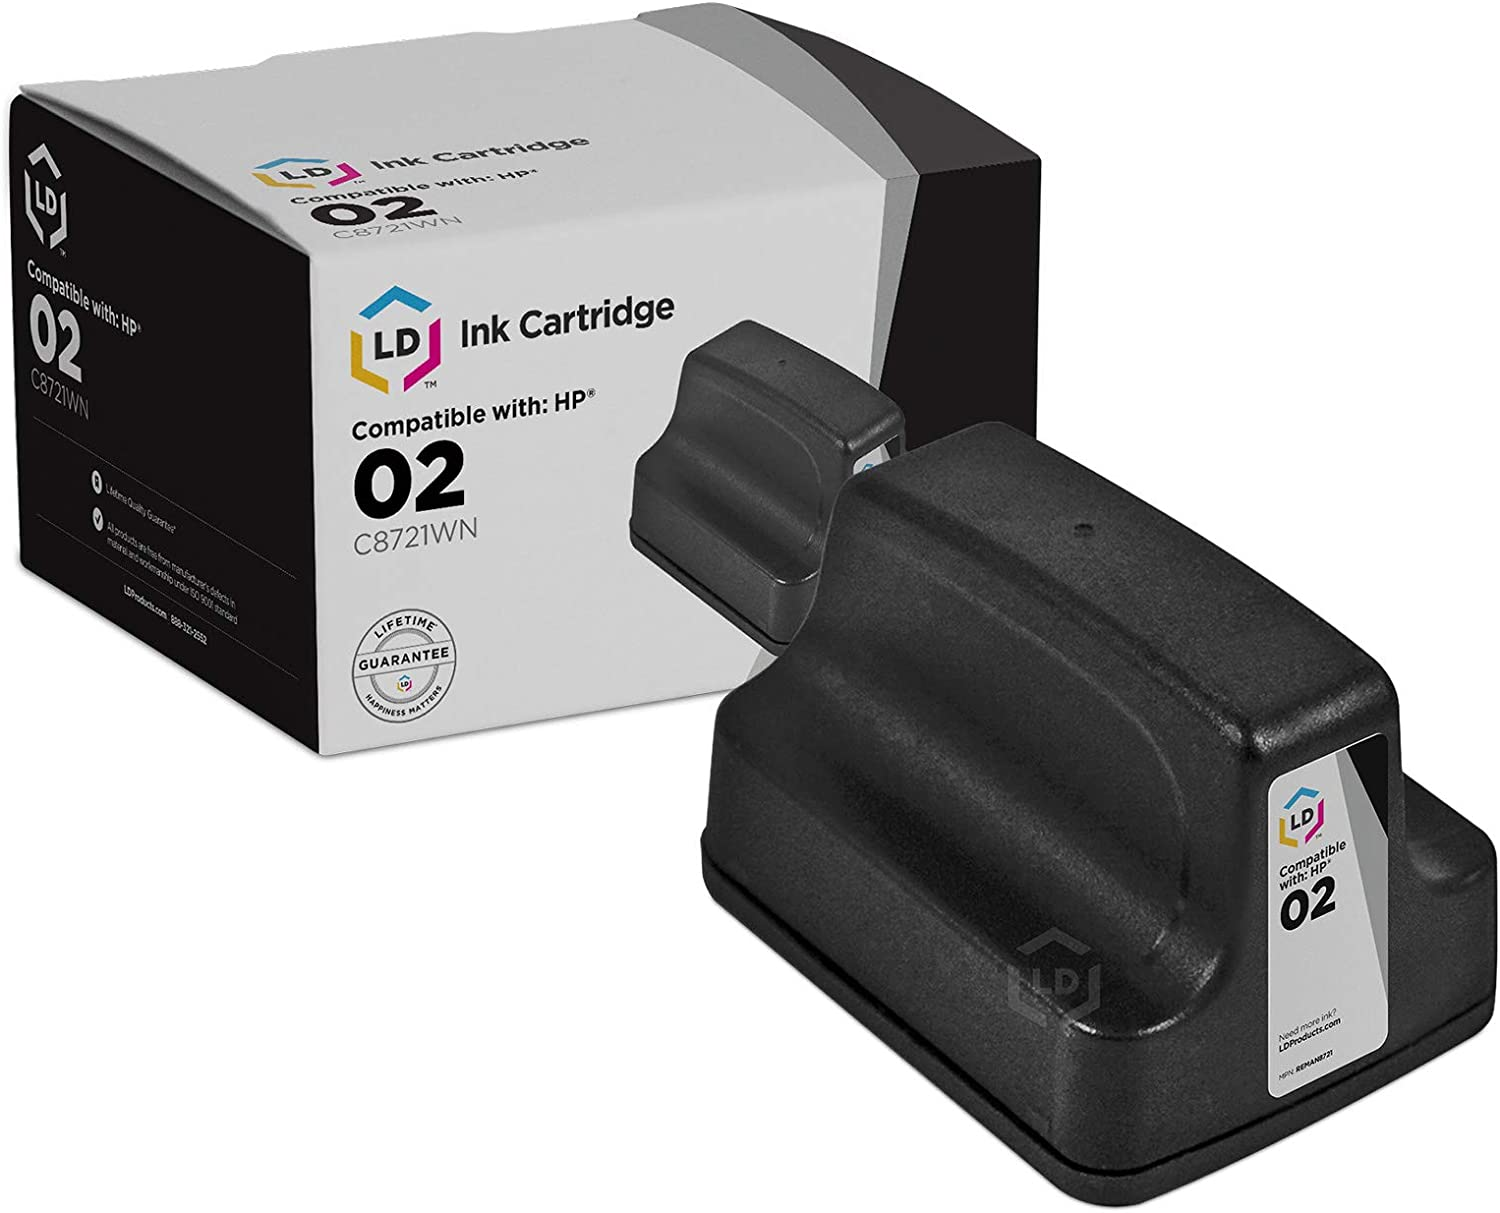 LD Remanufactured Ink Cartridge Replacement for HP 02 C8721WN (Black)